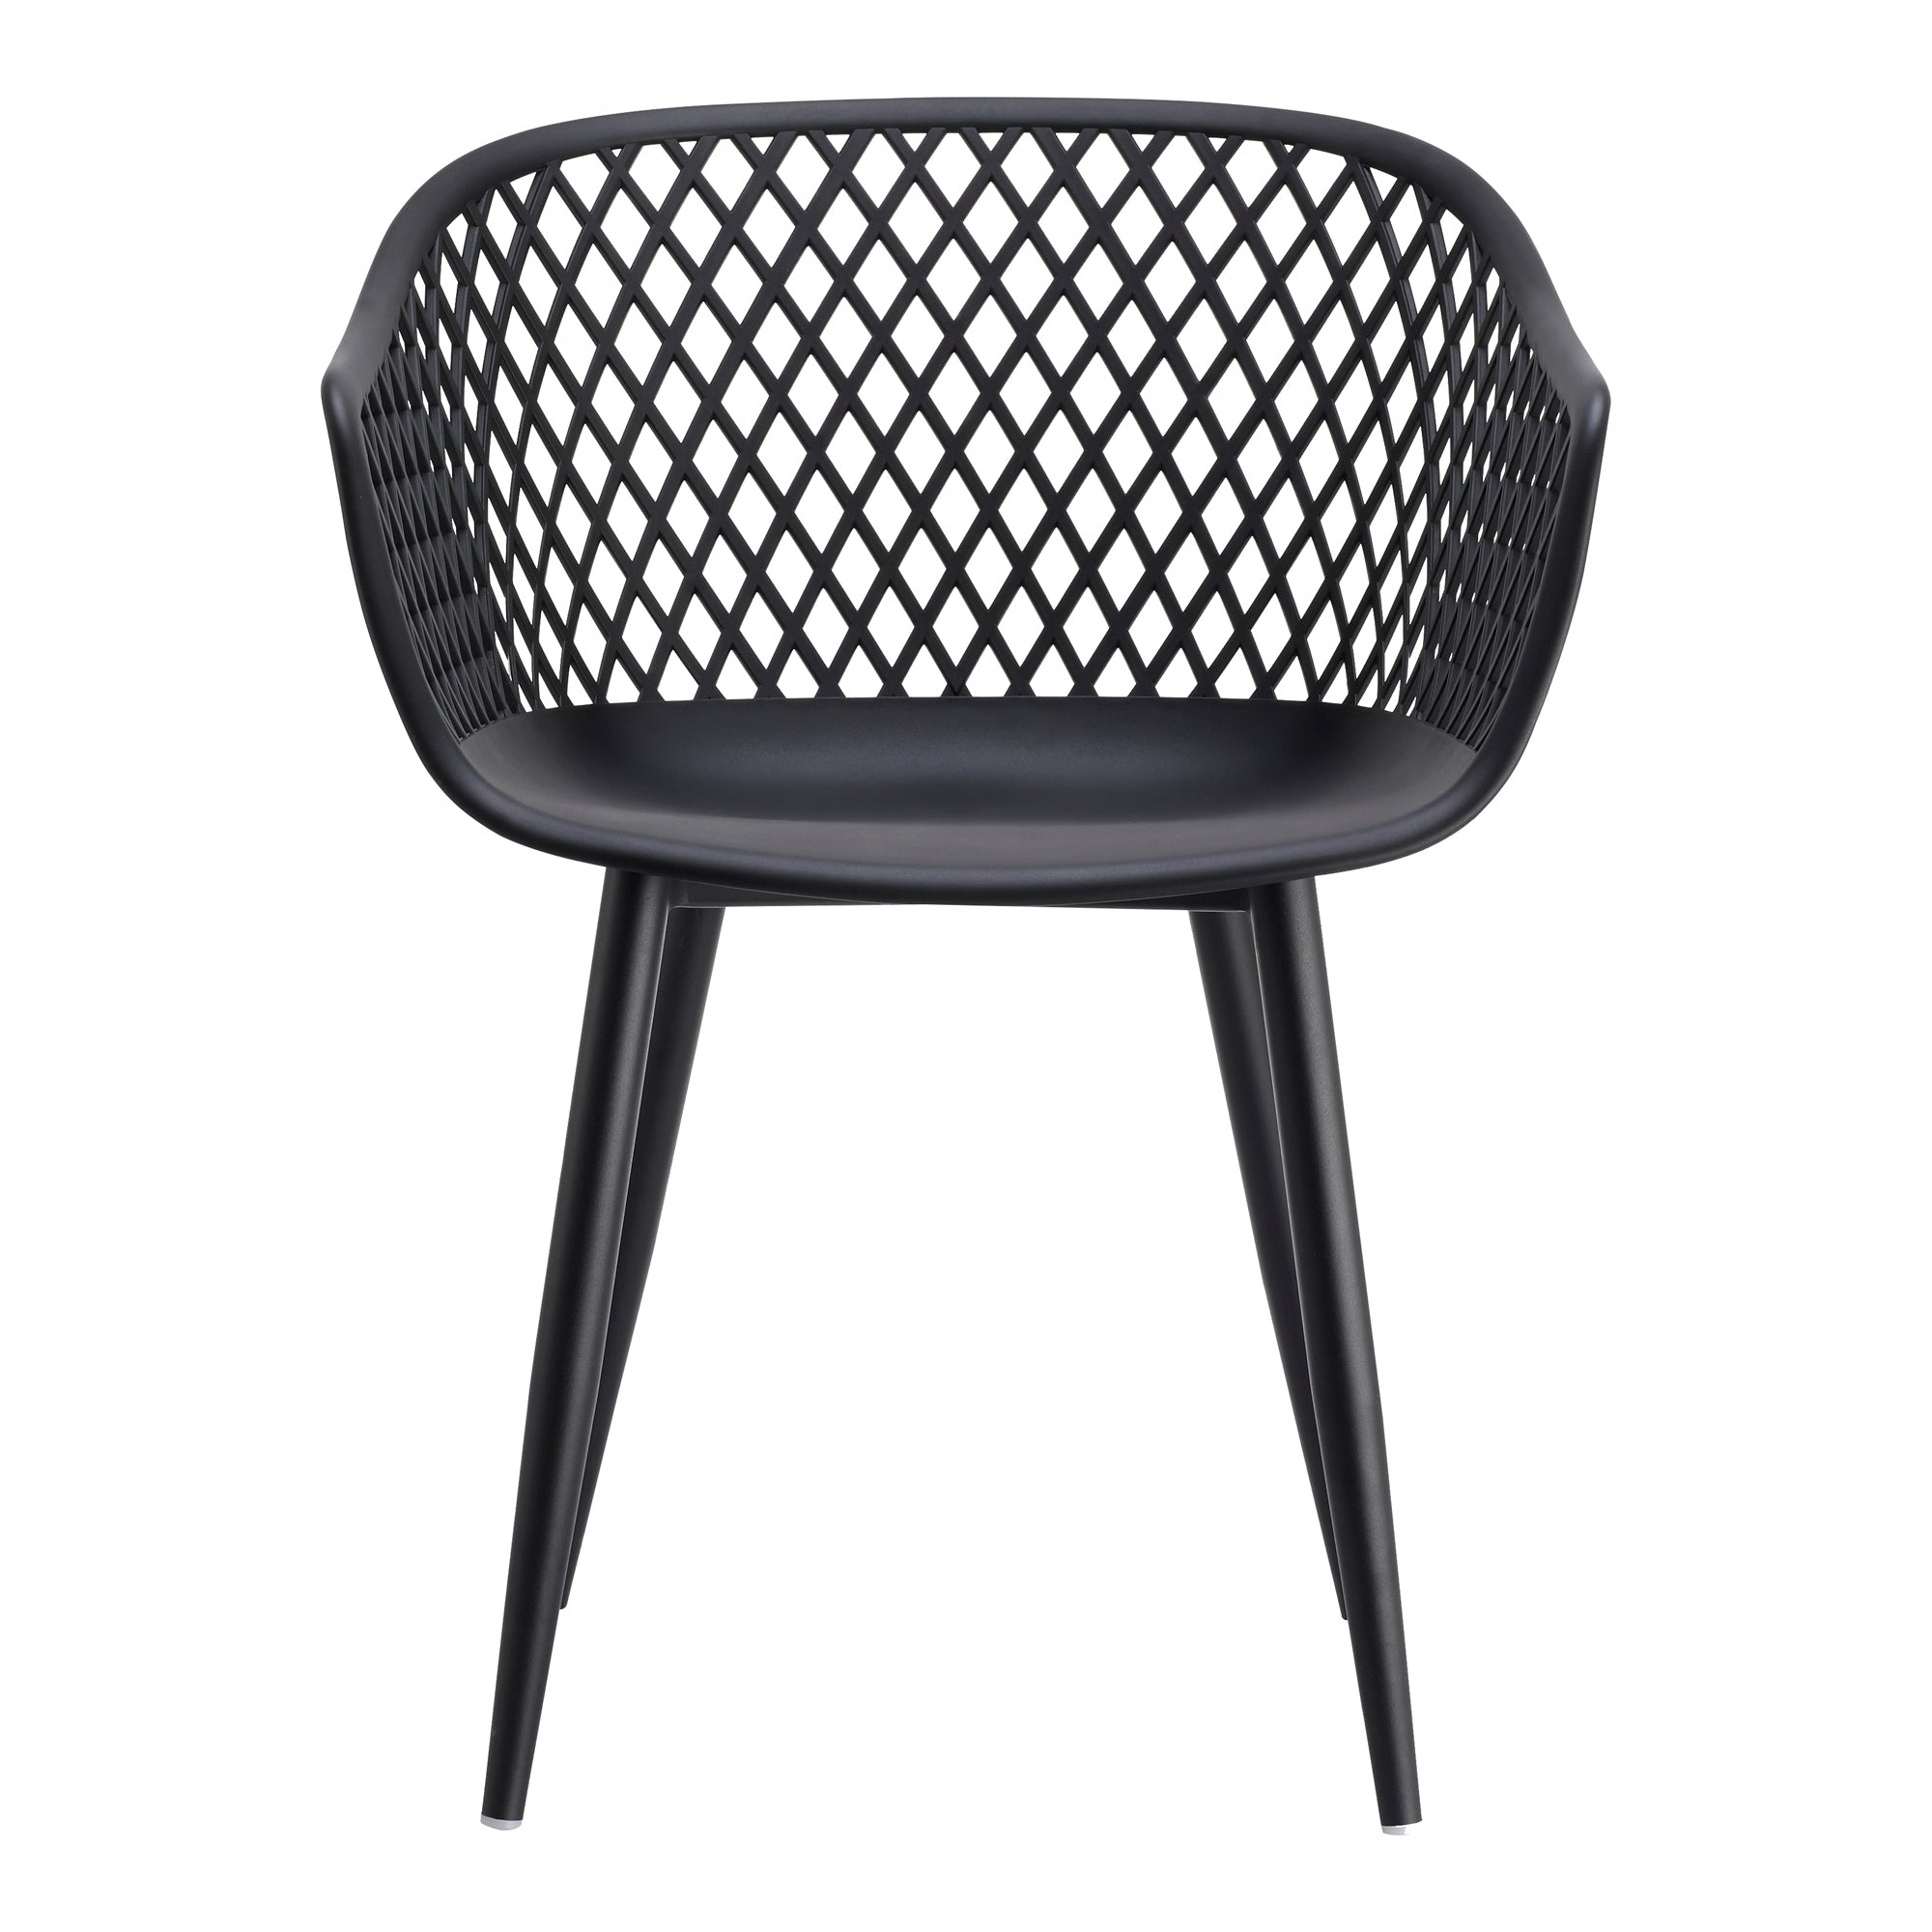 Piazza outdoor chair, black - Tops-Dress